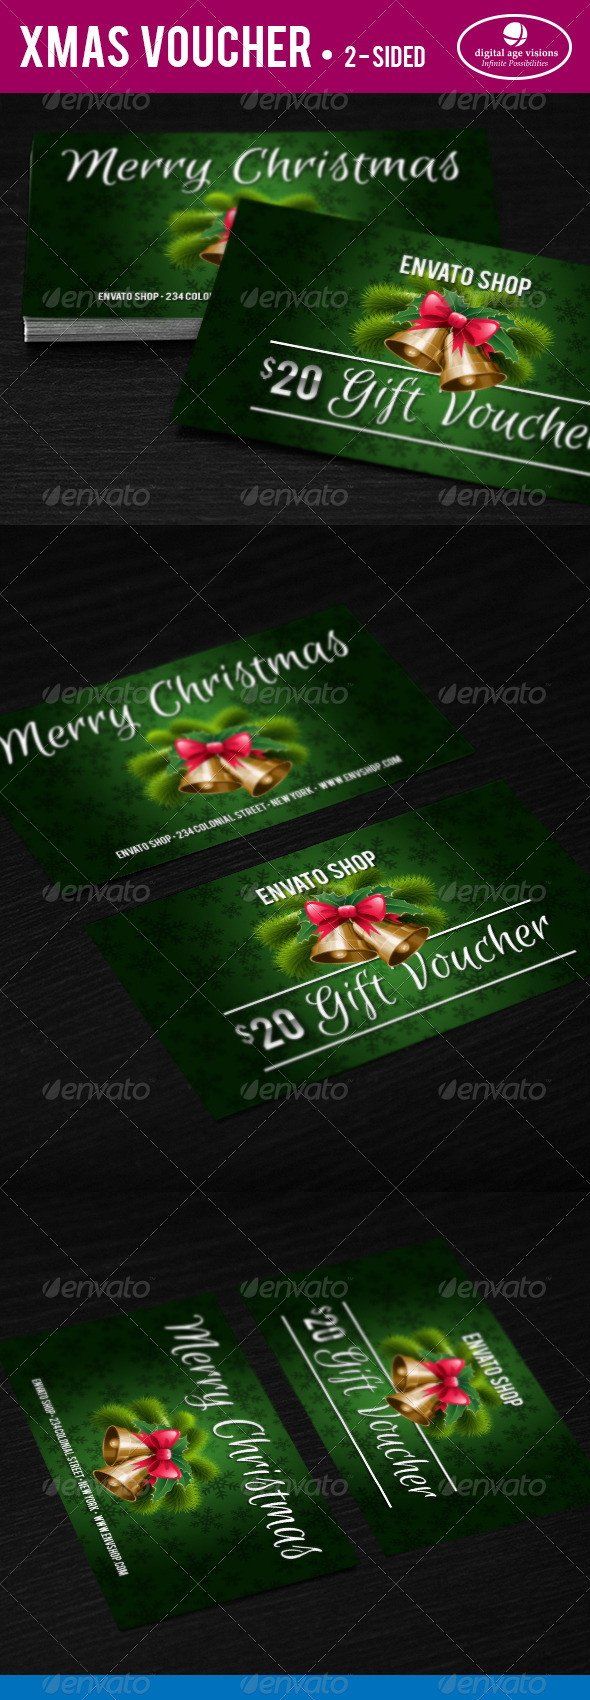 Xmas Gift Voucher - Loyalty Cards Cards & Invites